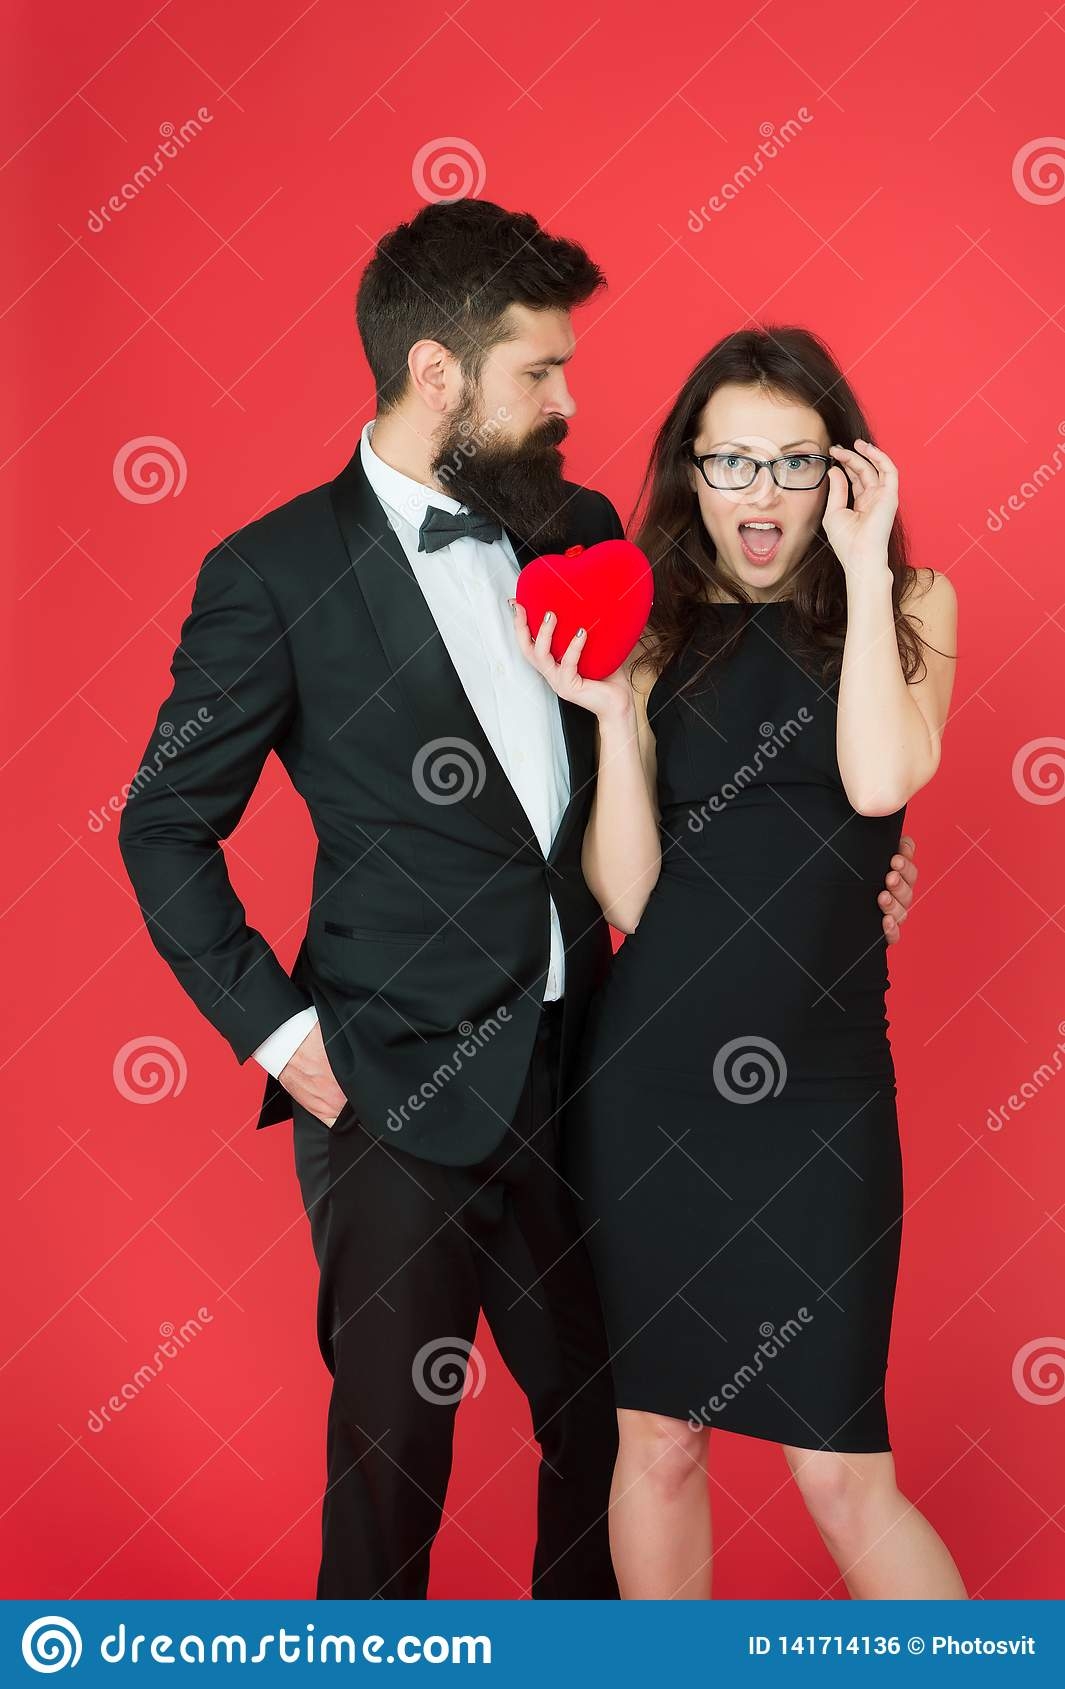 Do not play with my heart. Man with beard and woman happy celebrate anniversary. Couple in love dating anniversary. Man